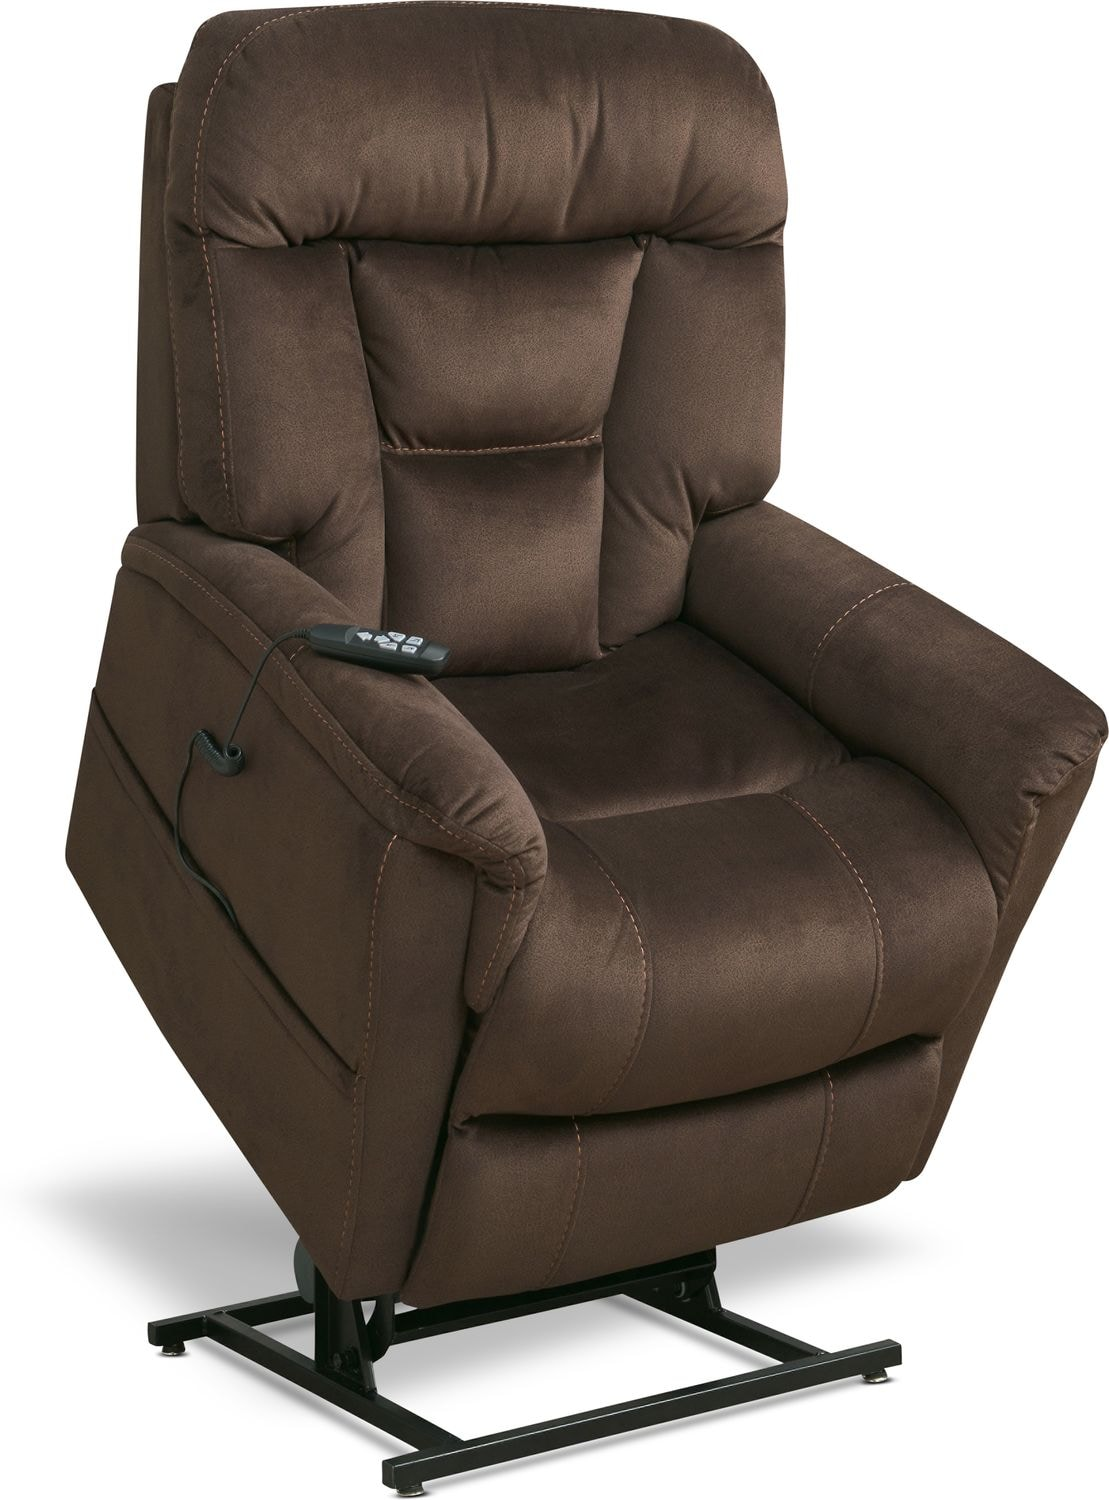 Living Room Furniture - Lagos Power Lift Recliner